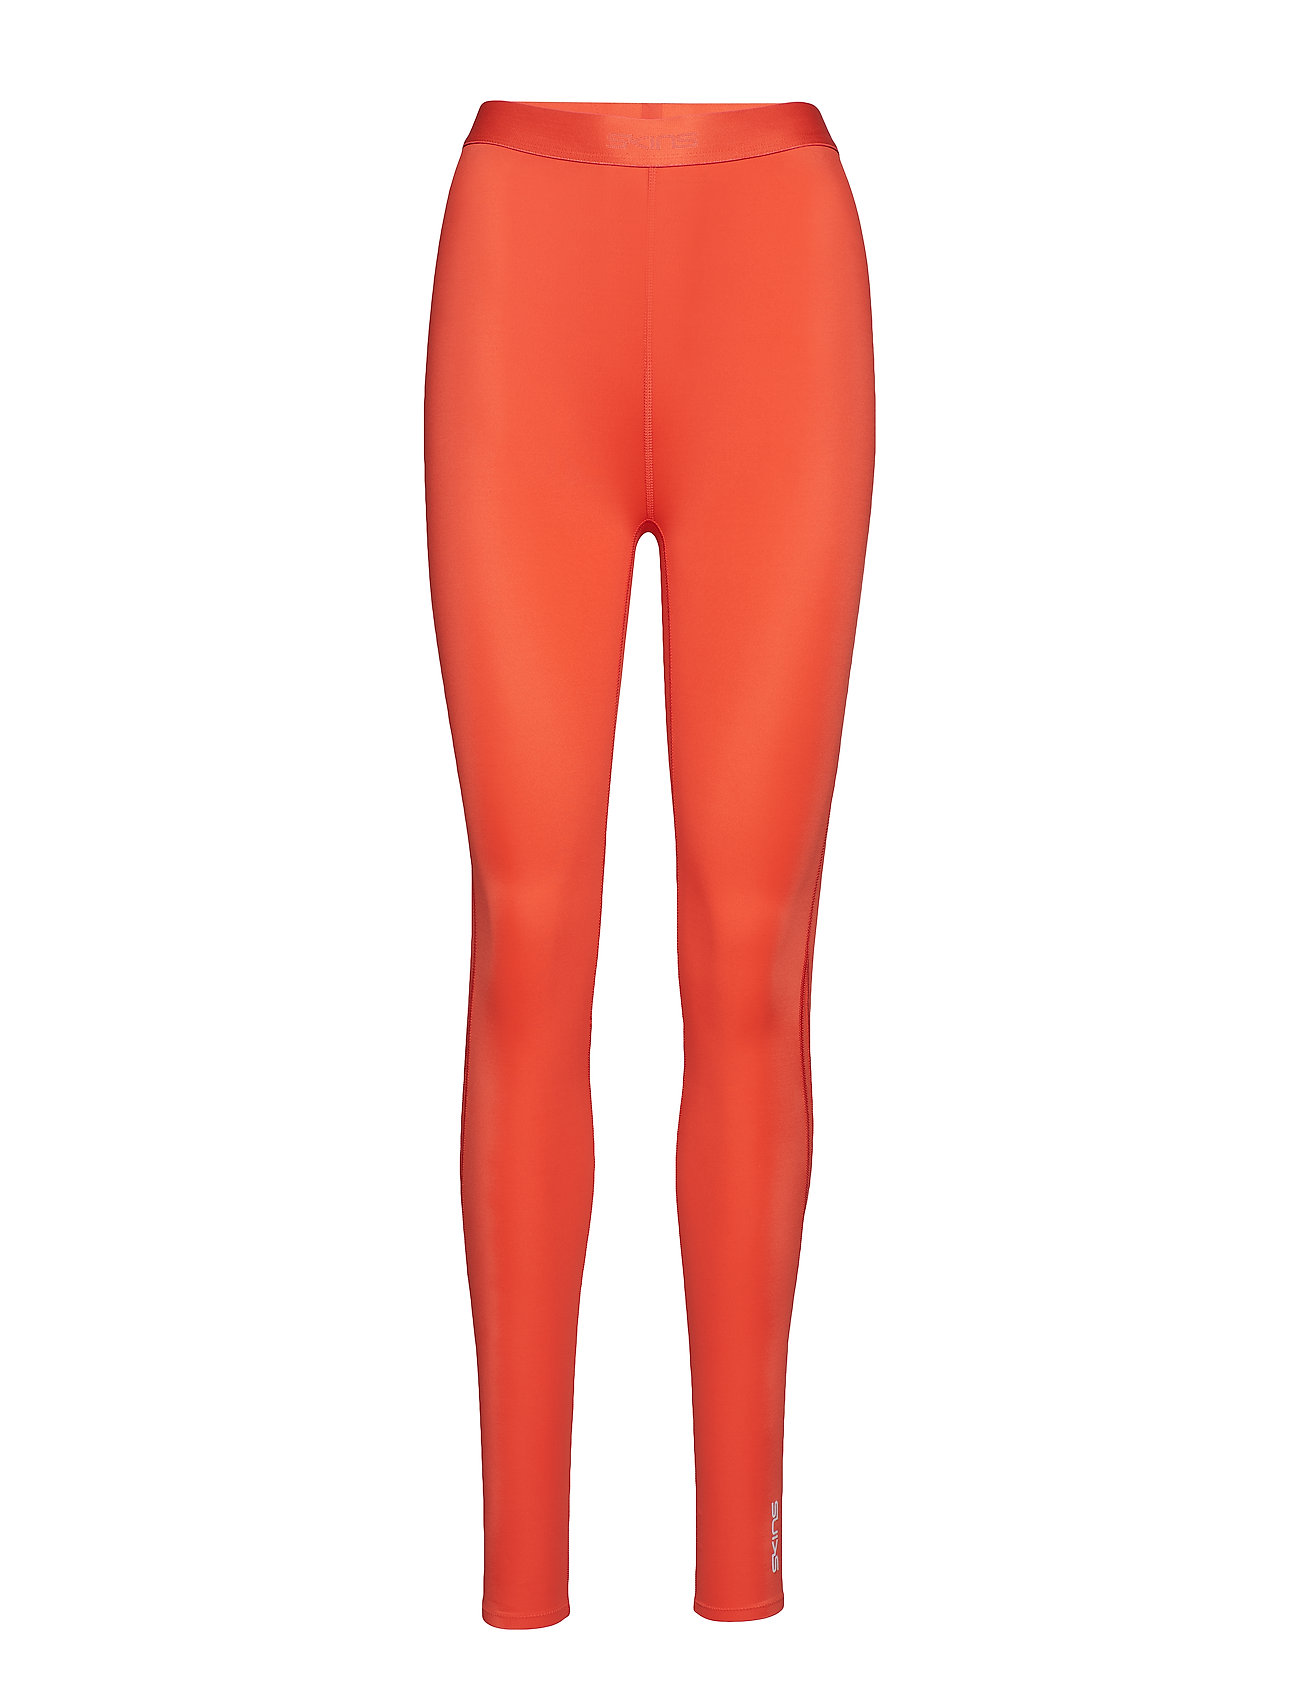 Skins DNAmic Womens Long Tights - CORAL RED